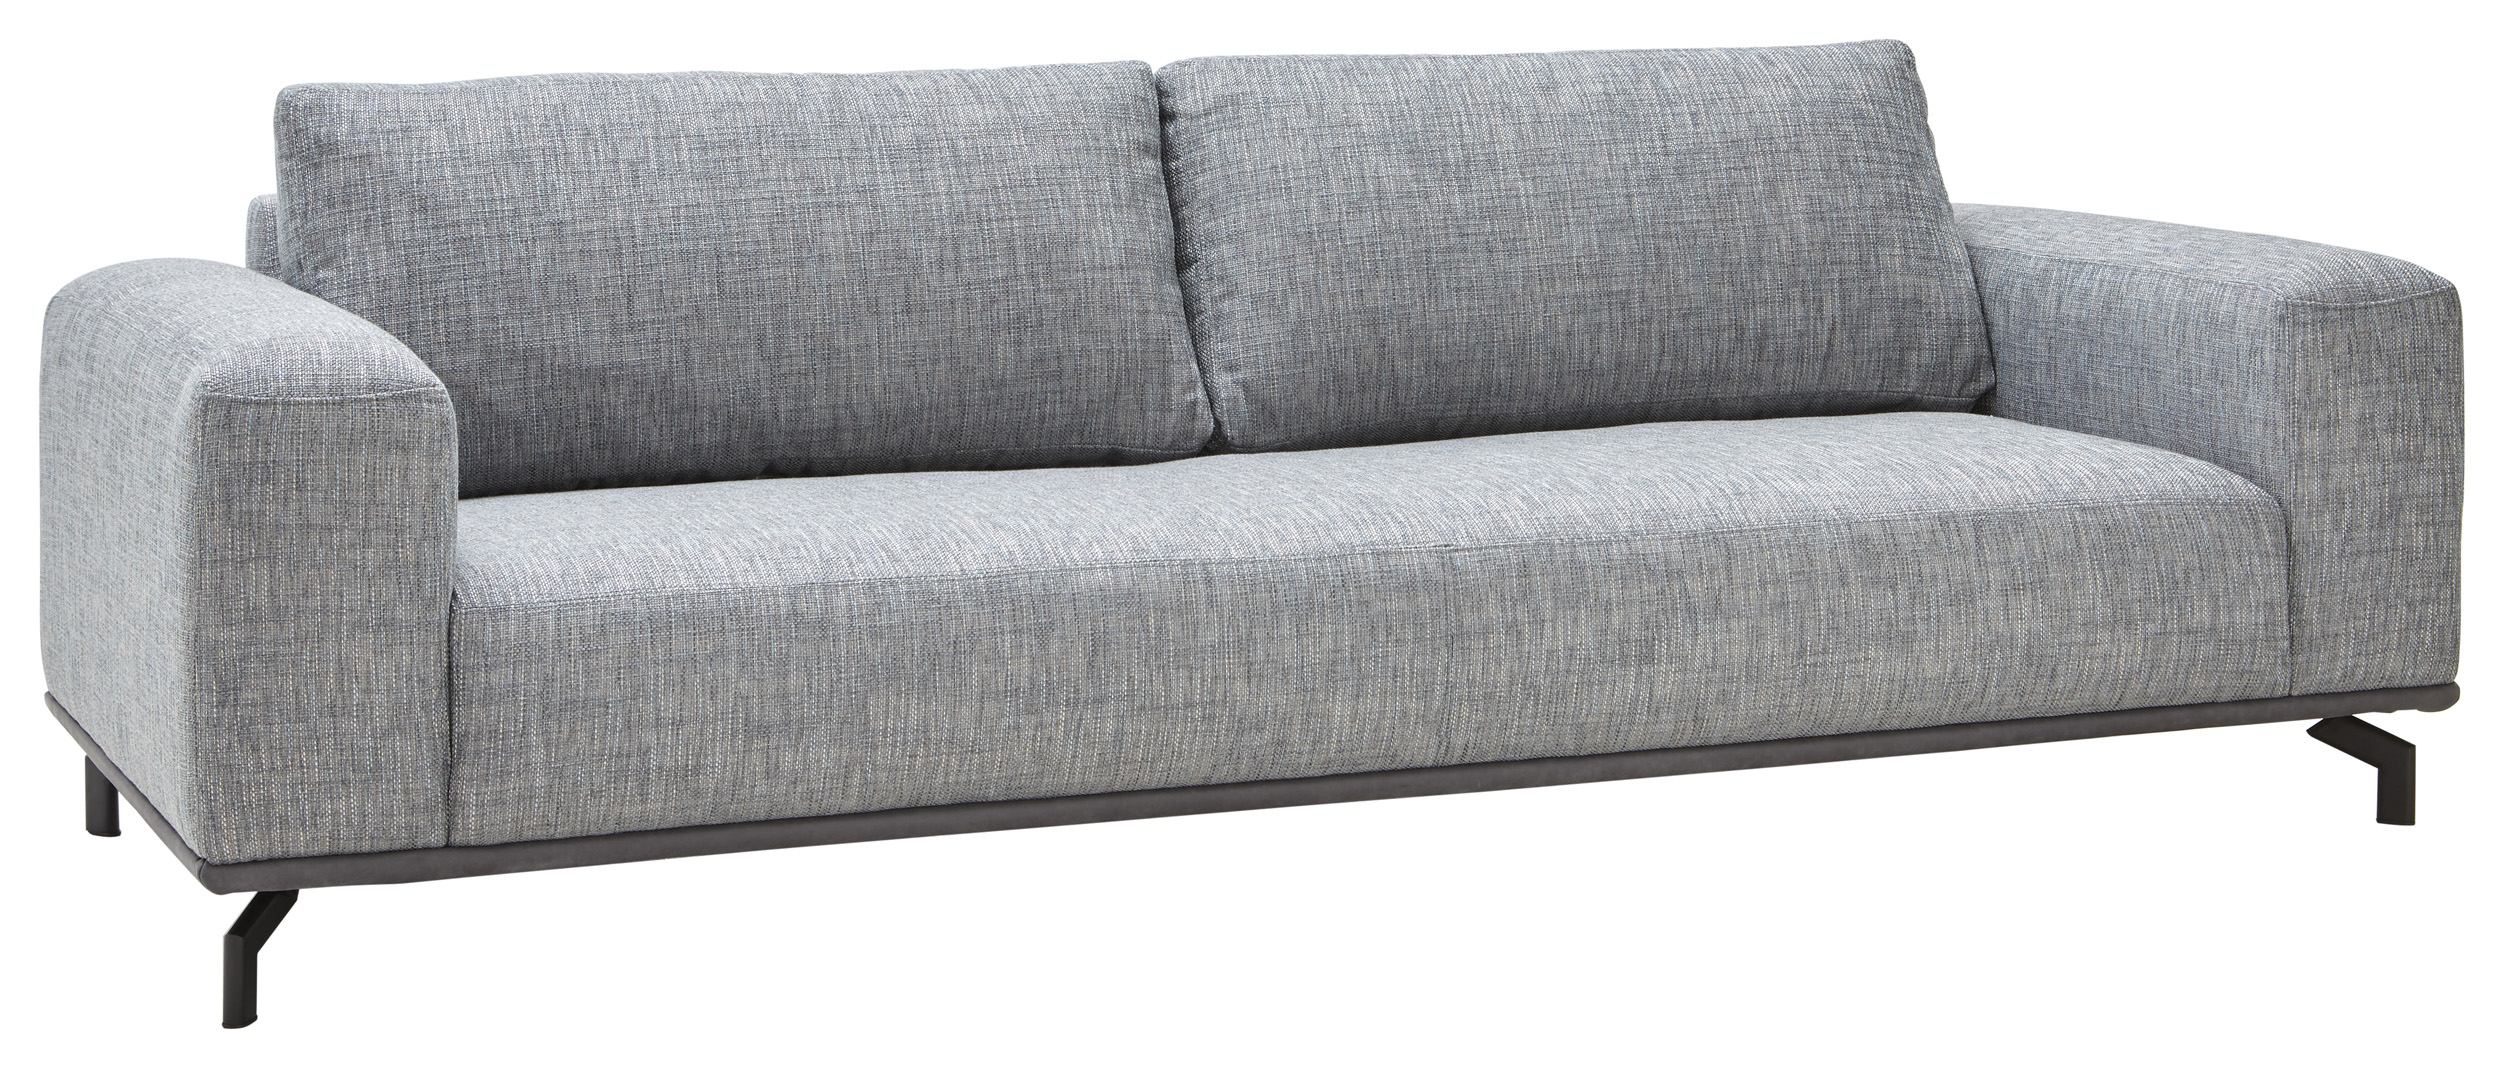 Full Size of Sofa 3 Sitzer Natura Brooklyn Grau Mbelhaus Pohl Englisches Lagerverkauf Goodlife Cassina Riess Ambiente Home Affaire Mit Relaxfunktion Chesterfield Leder Sofa Sofa 3 Sitzer